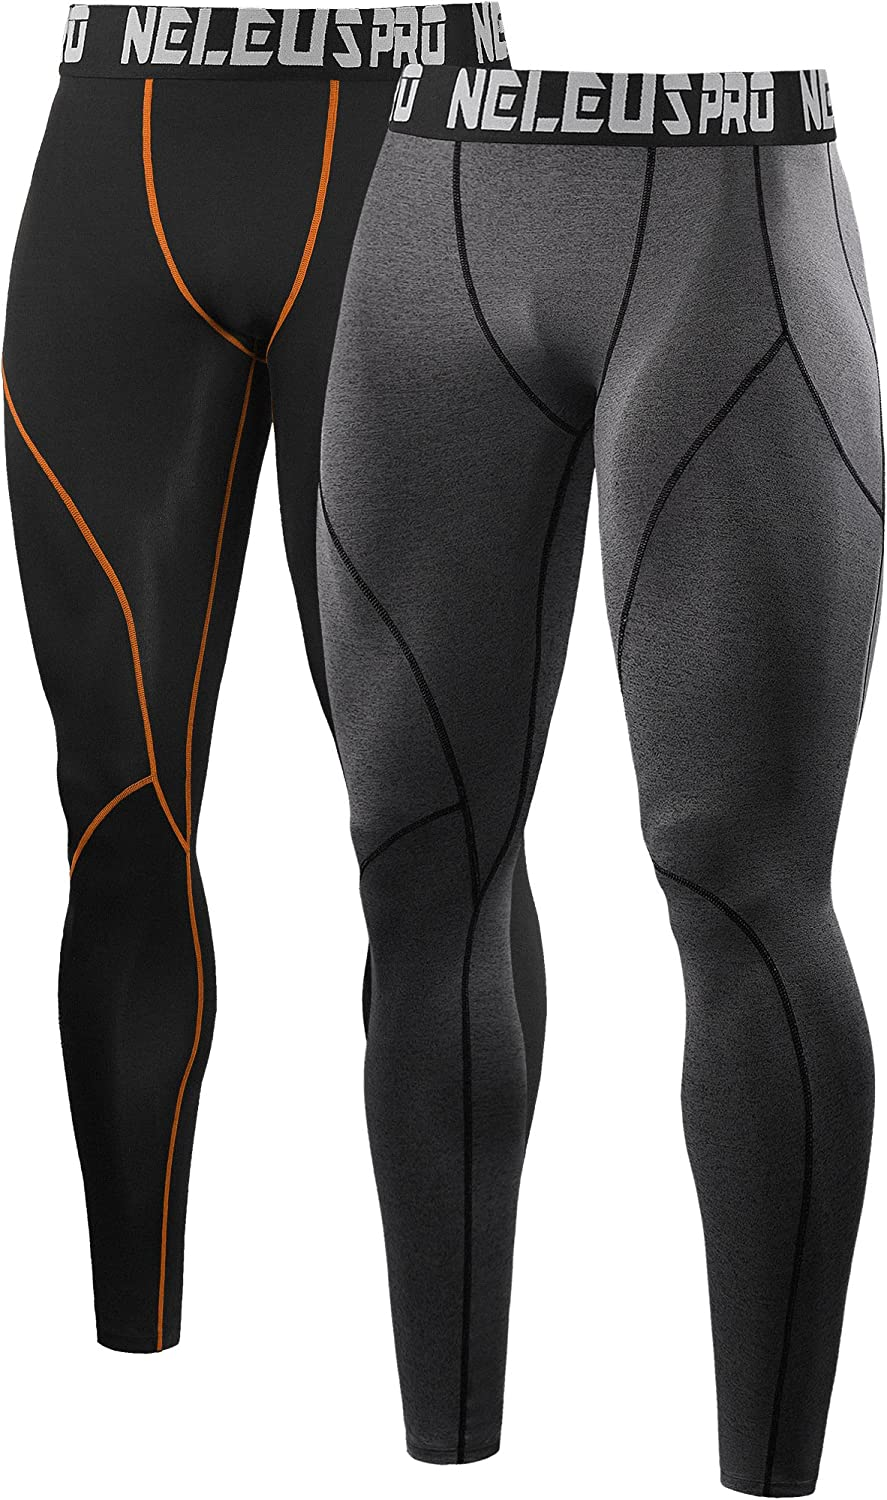 Neleus Men's Dry Fit Compression Pants Workout Running Leggings